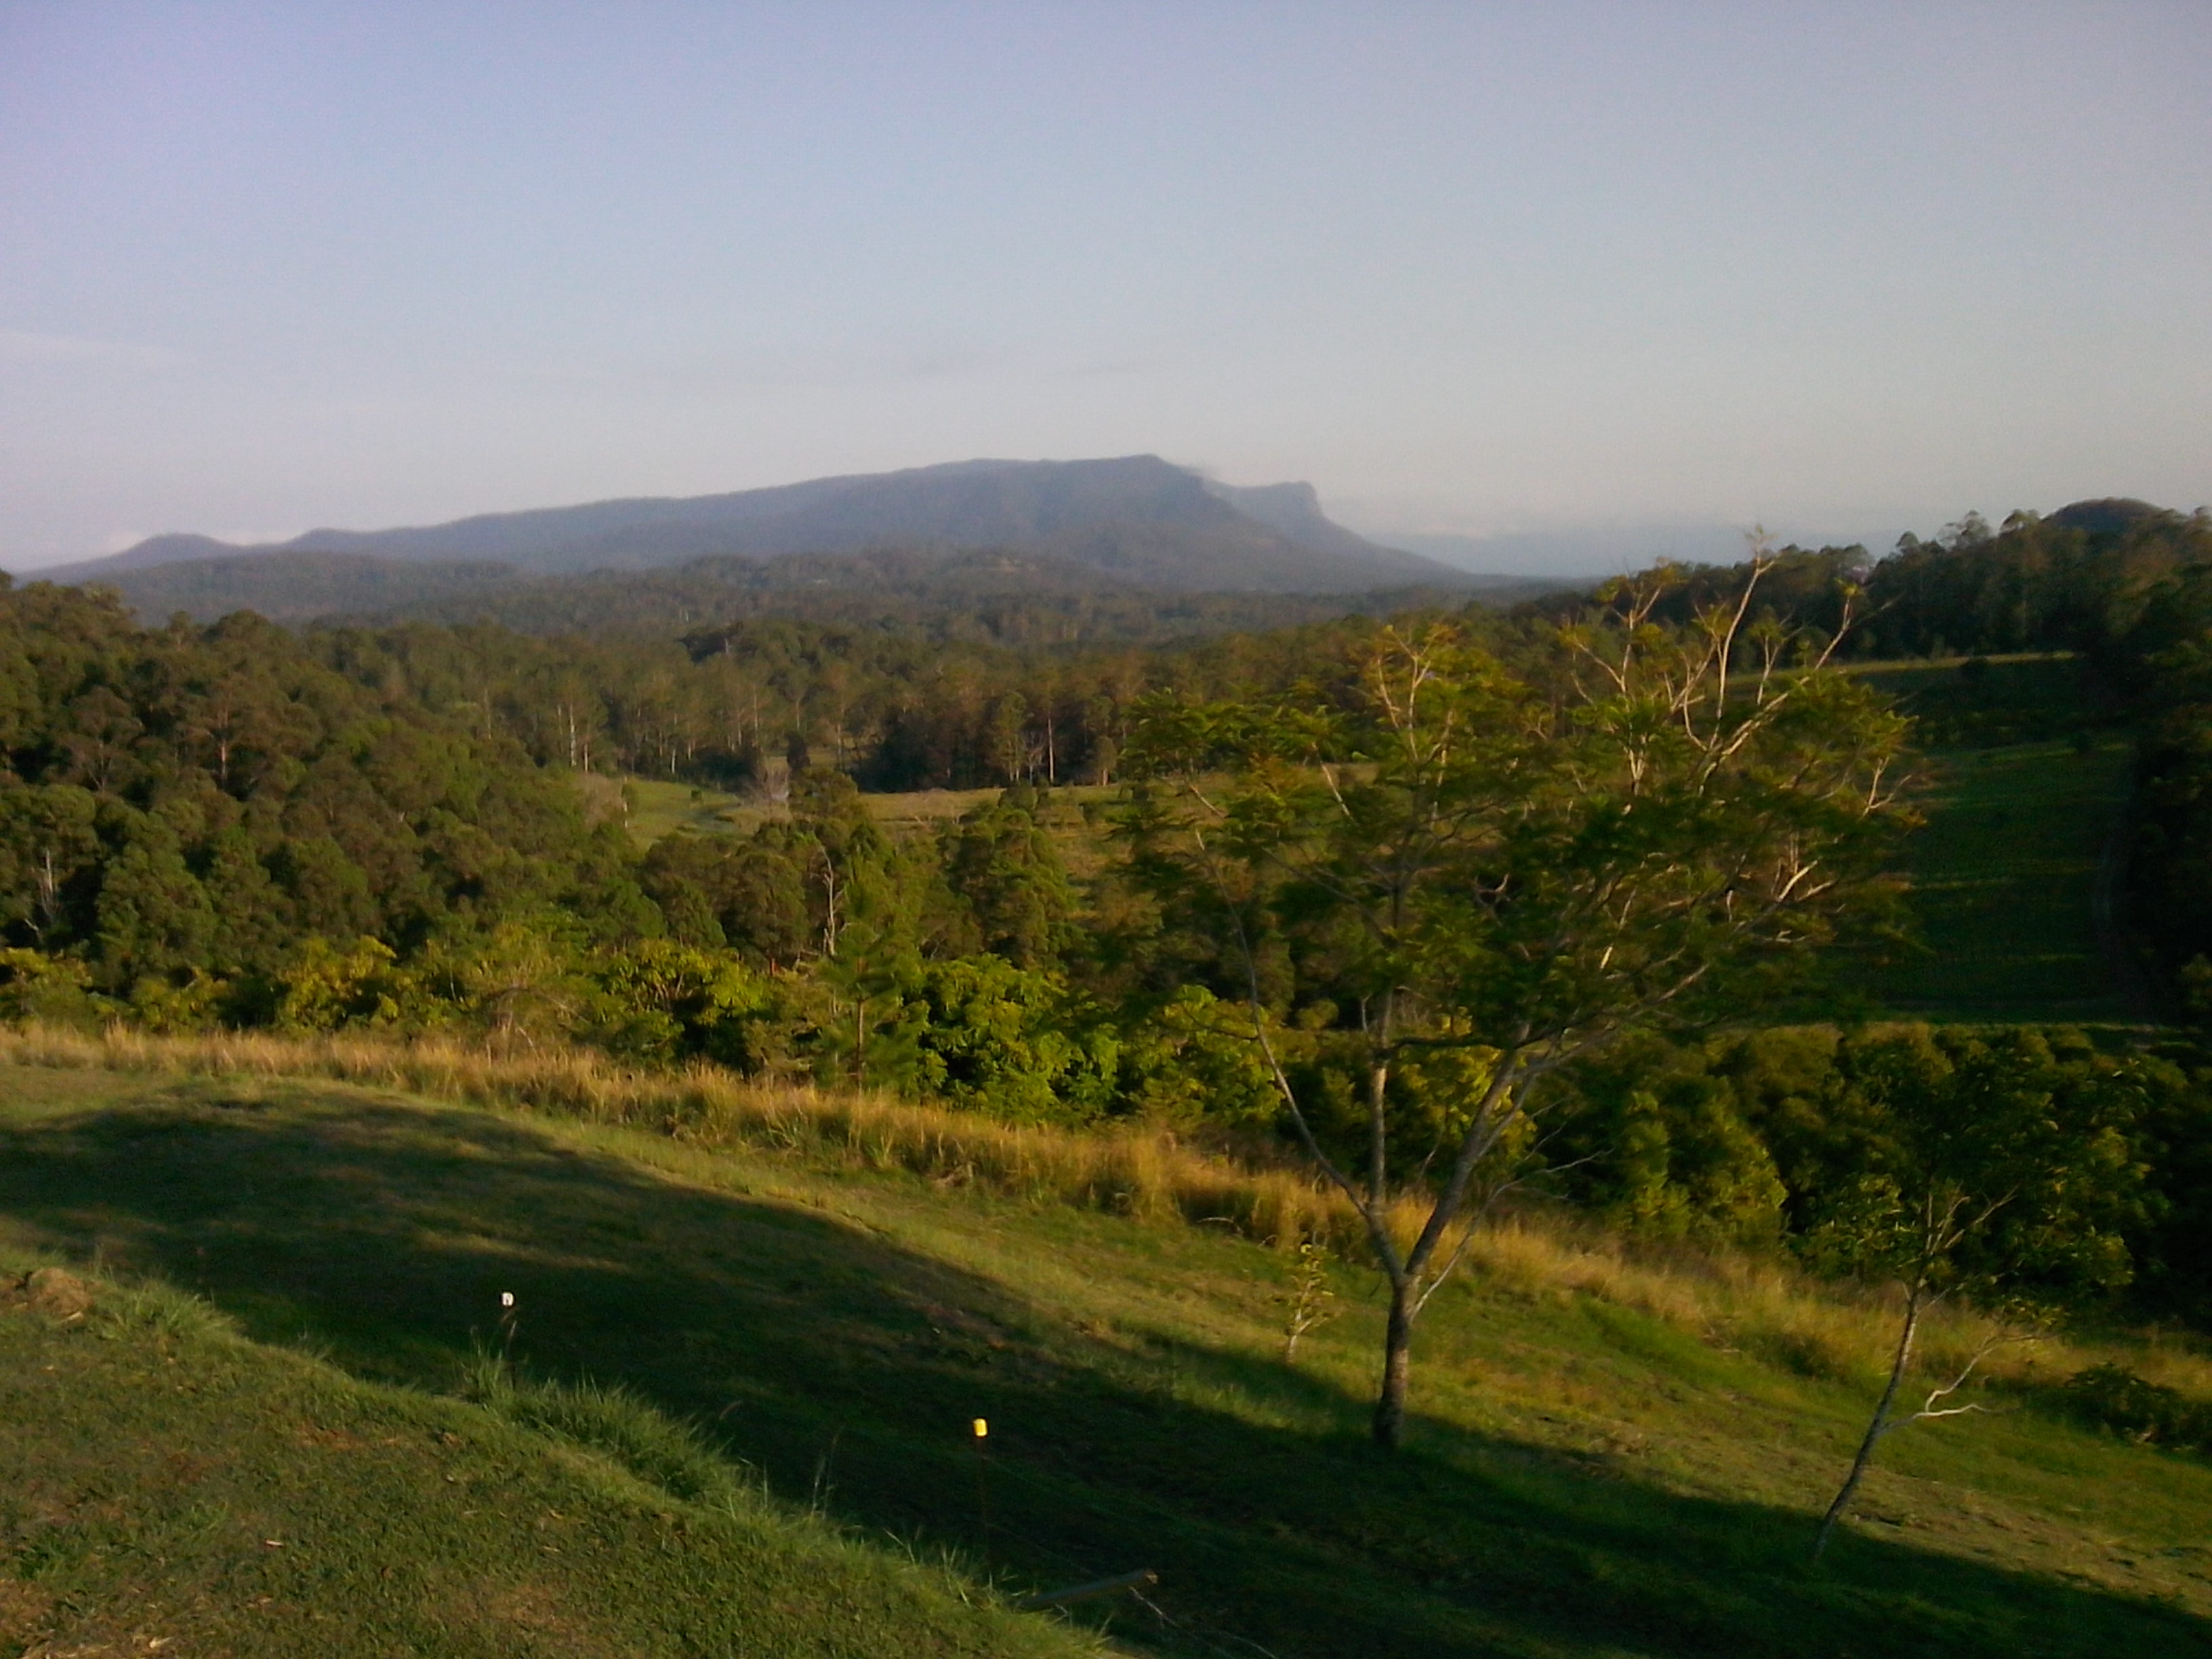 View of rain forest covered mountains from house at Stoney Chute nr Nimbin, NSW, Australia